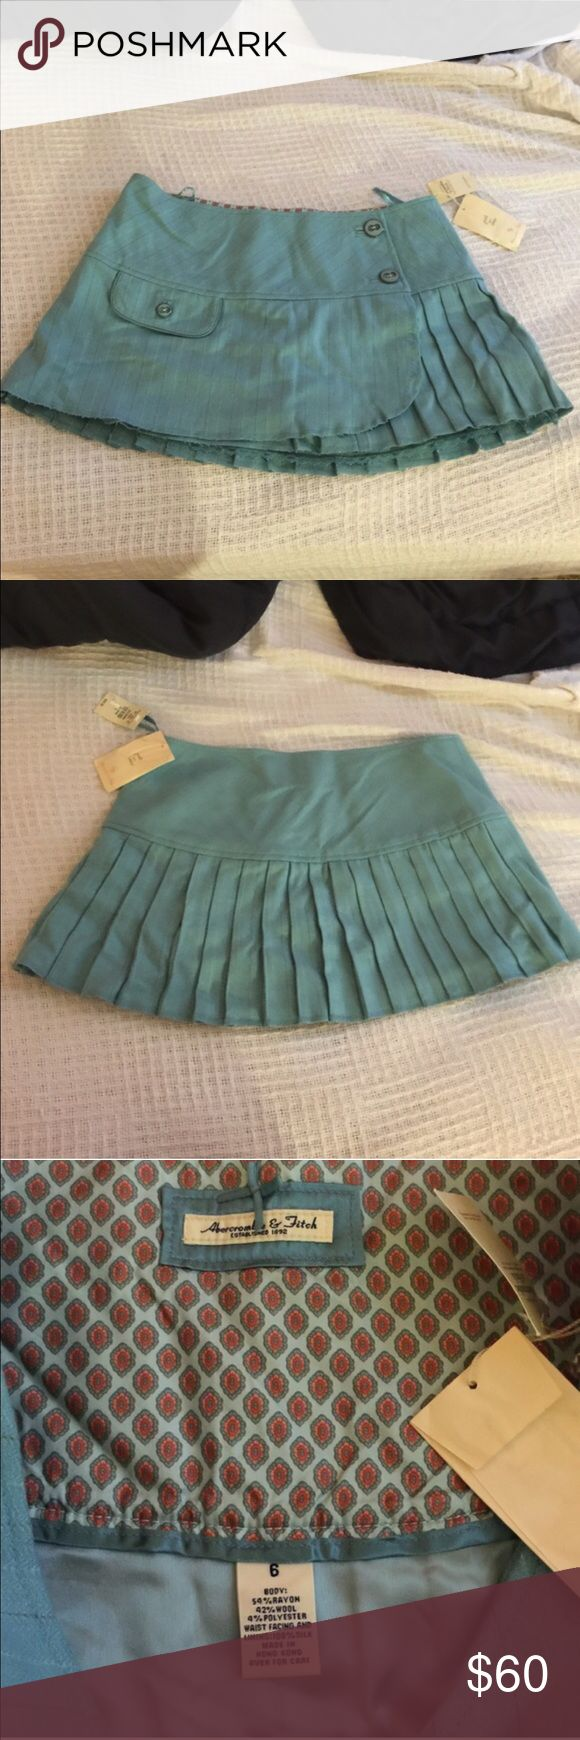 Abercrombie and Fitch Skirt Size 6 Blue Abercrombie and Fitch size 6 skirt. Never Worn. New With Tags Abercrombie & Fitch Skirts